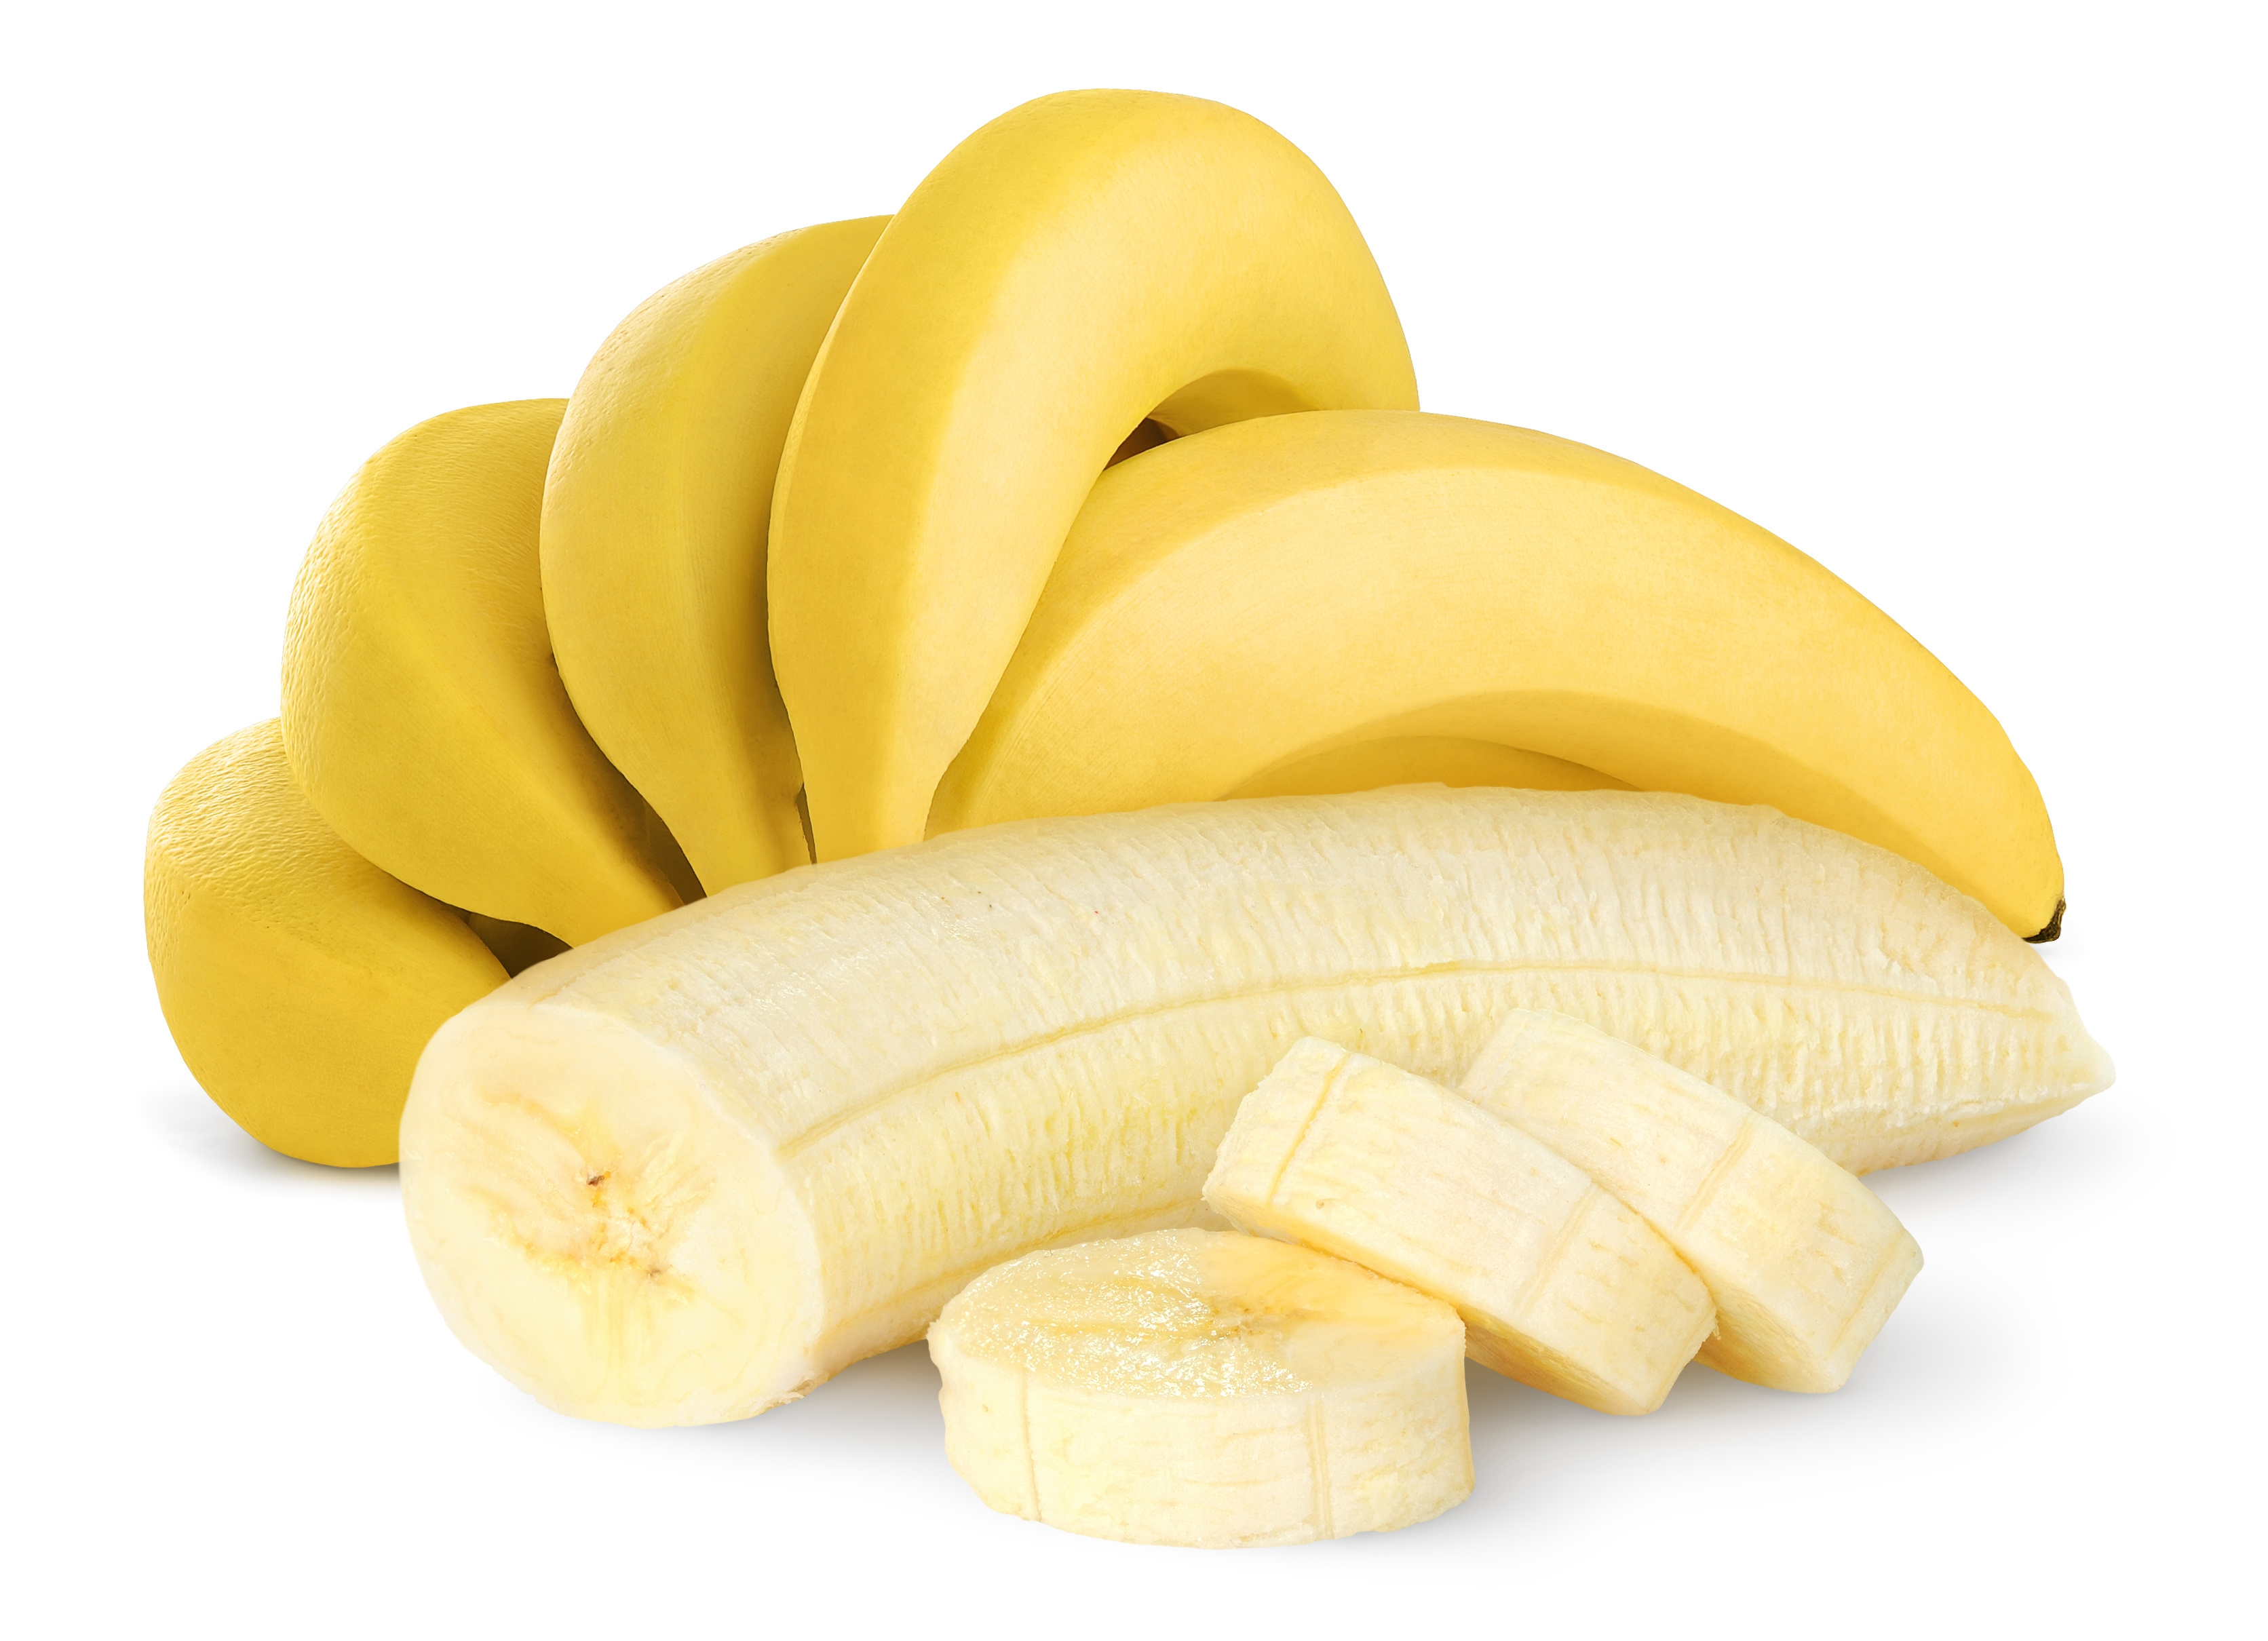 banana hd background